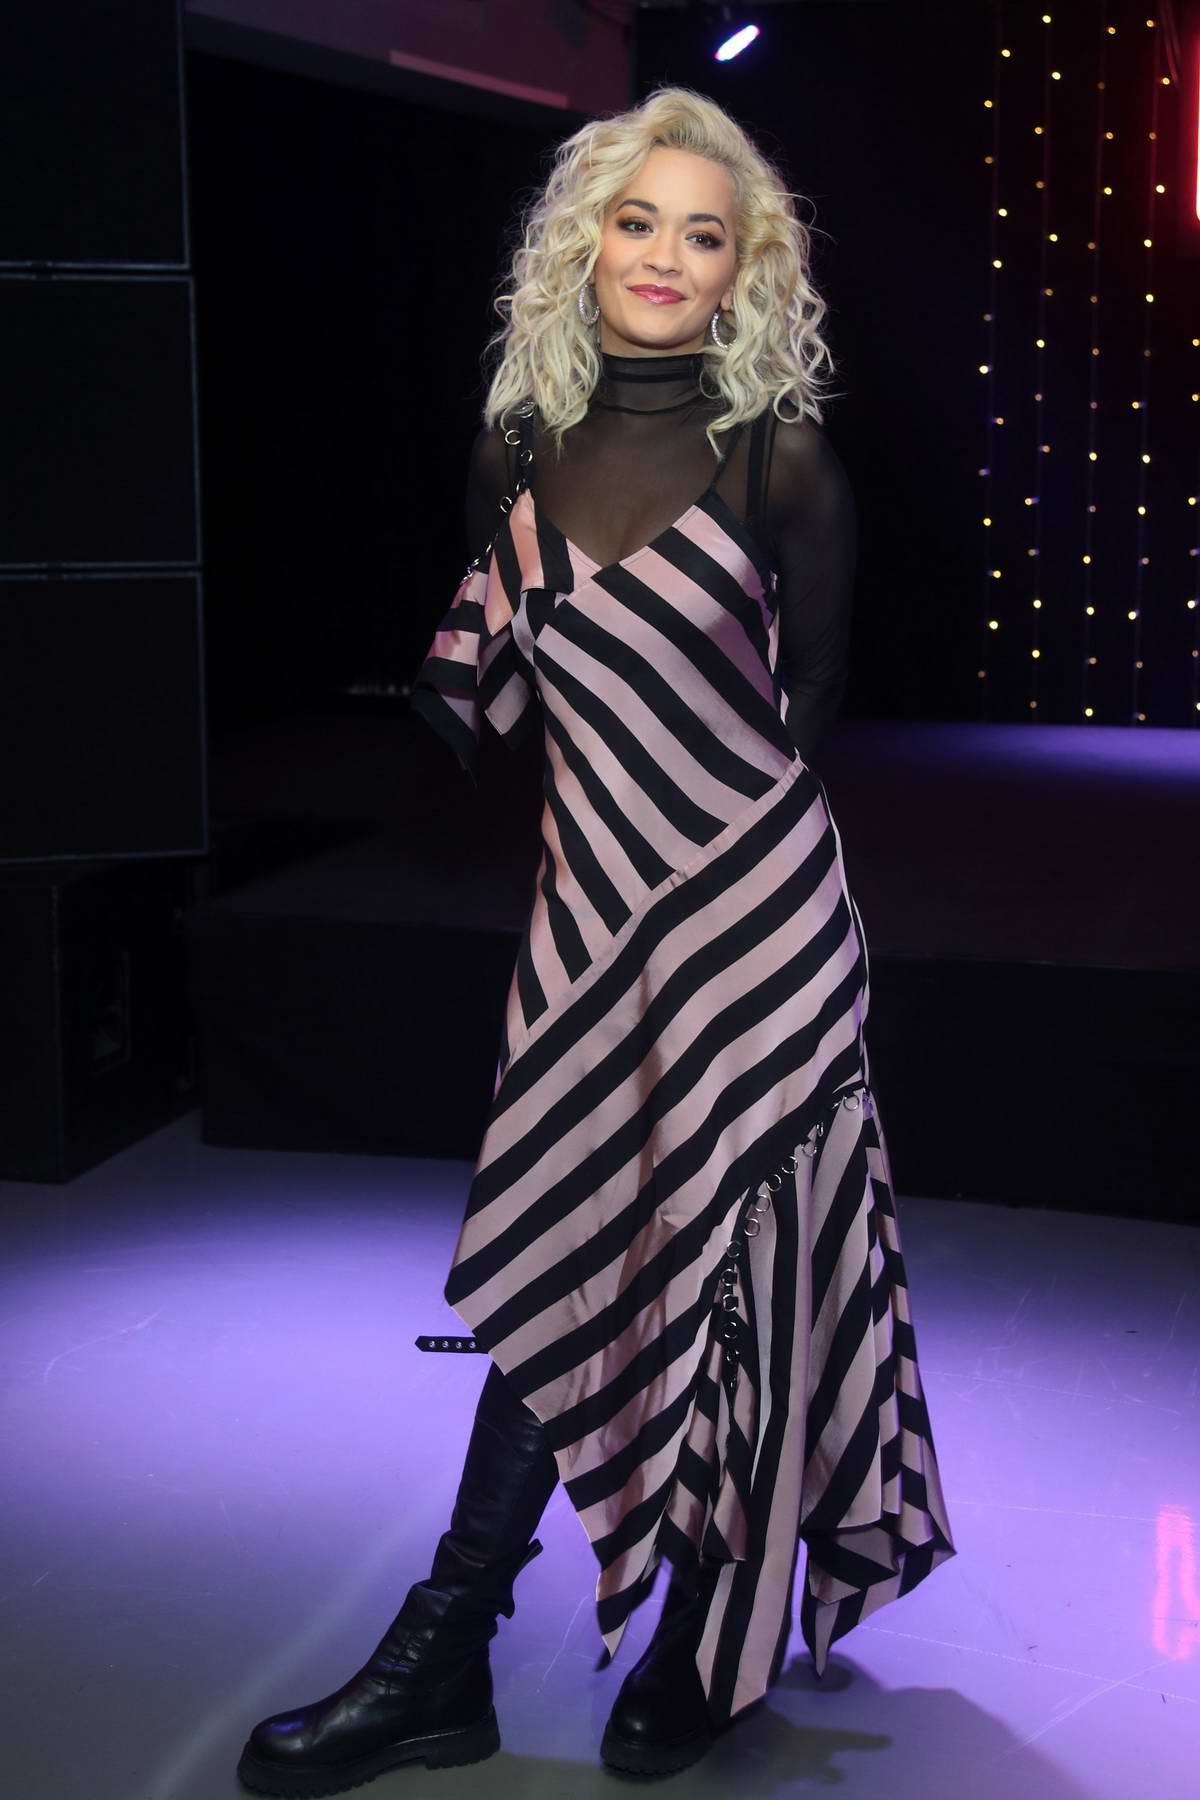 Rita Ora attends a signing session for her new album Phoenix at HMV Oxford Street in London, UK